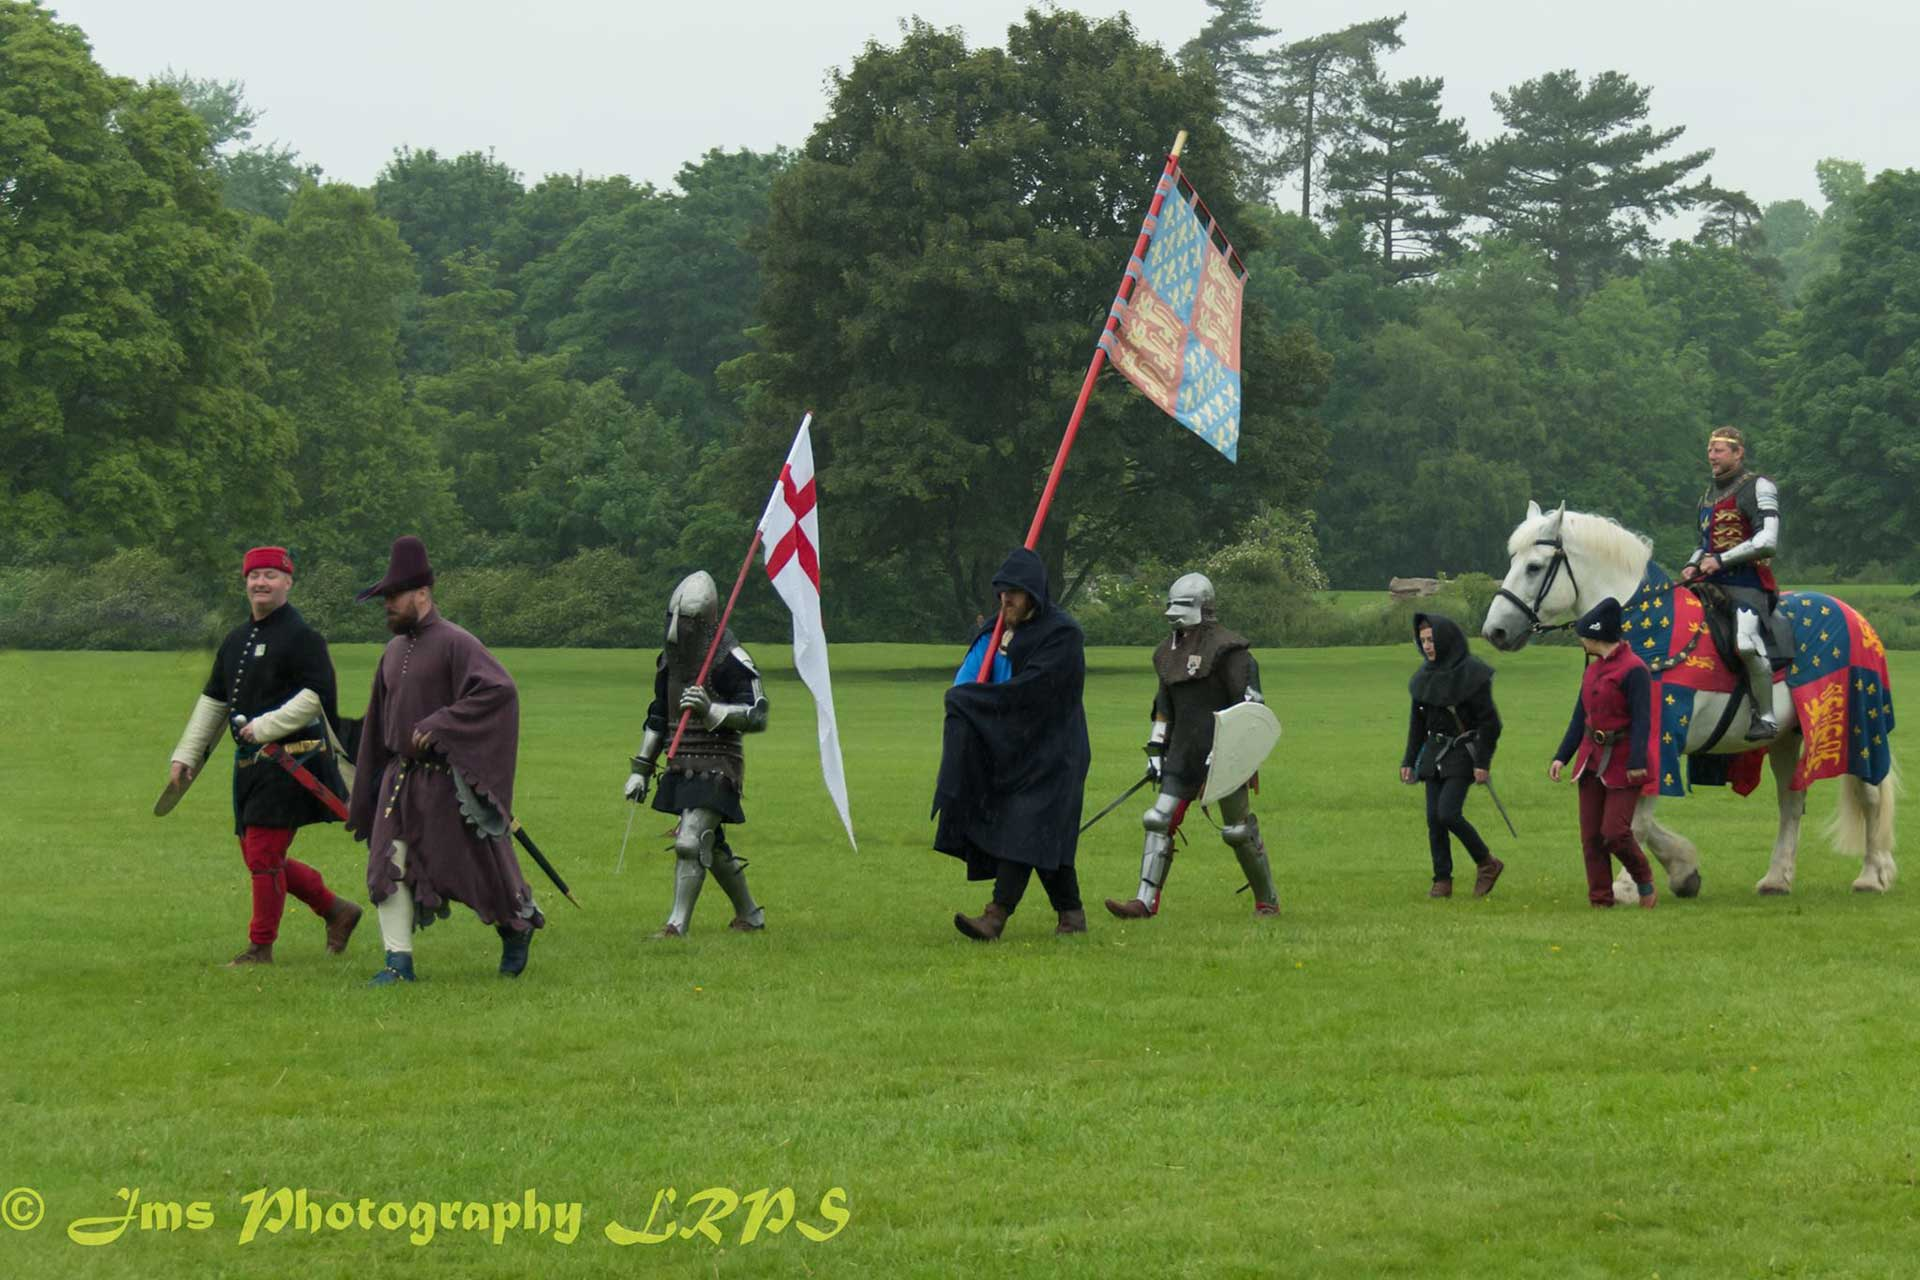 Plantagenet Medieval Society at the Plantagenet Re-enactment Weekend in Cirencester